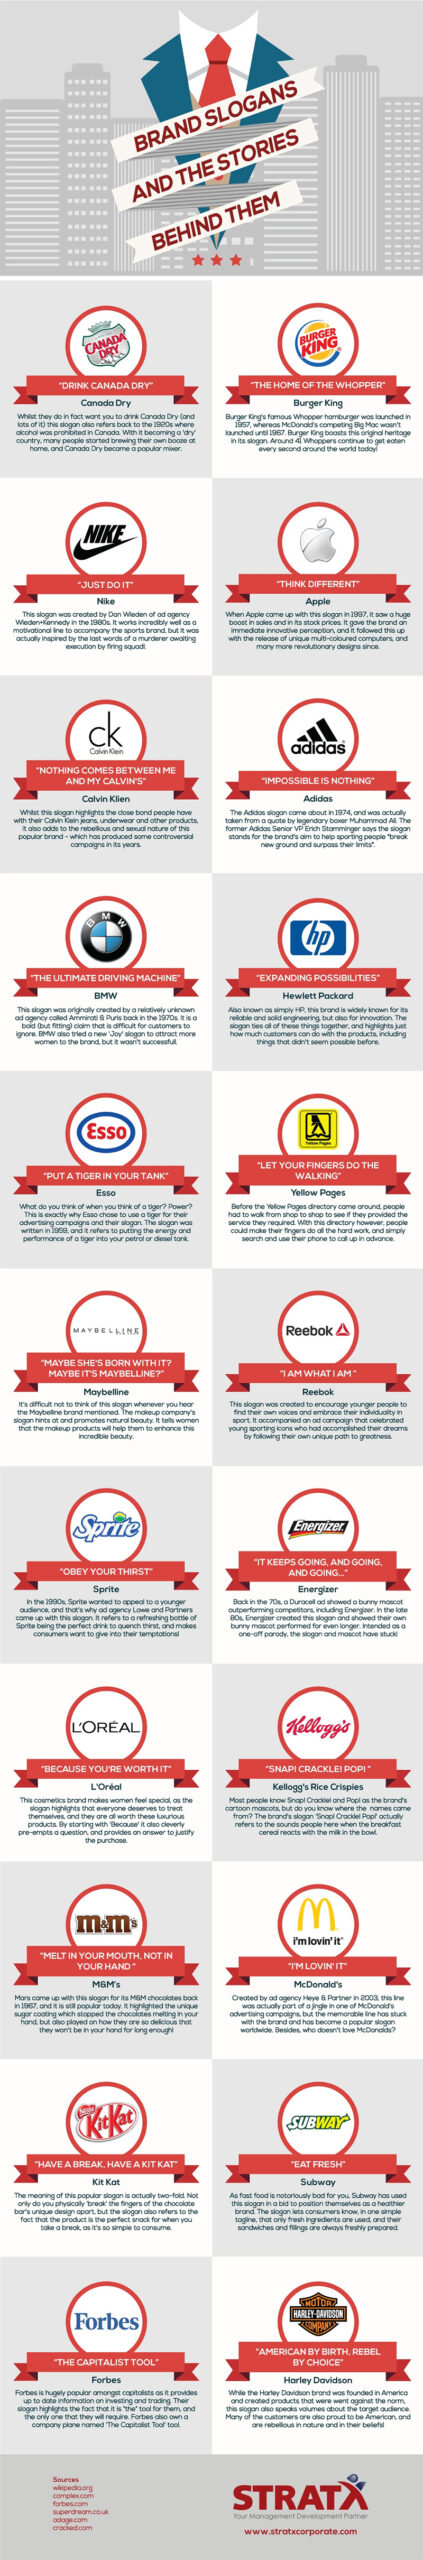 Branding Inspiration 22 Famous Brand Slogans the Stories Behind Them scaled